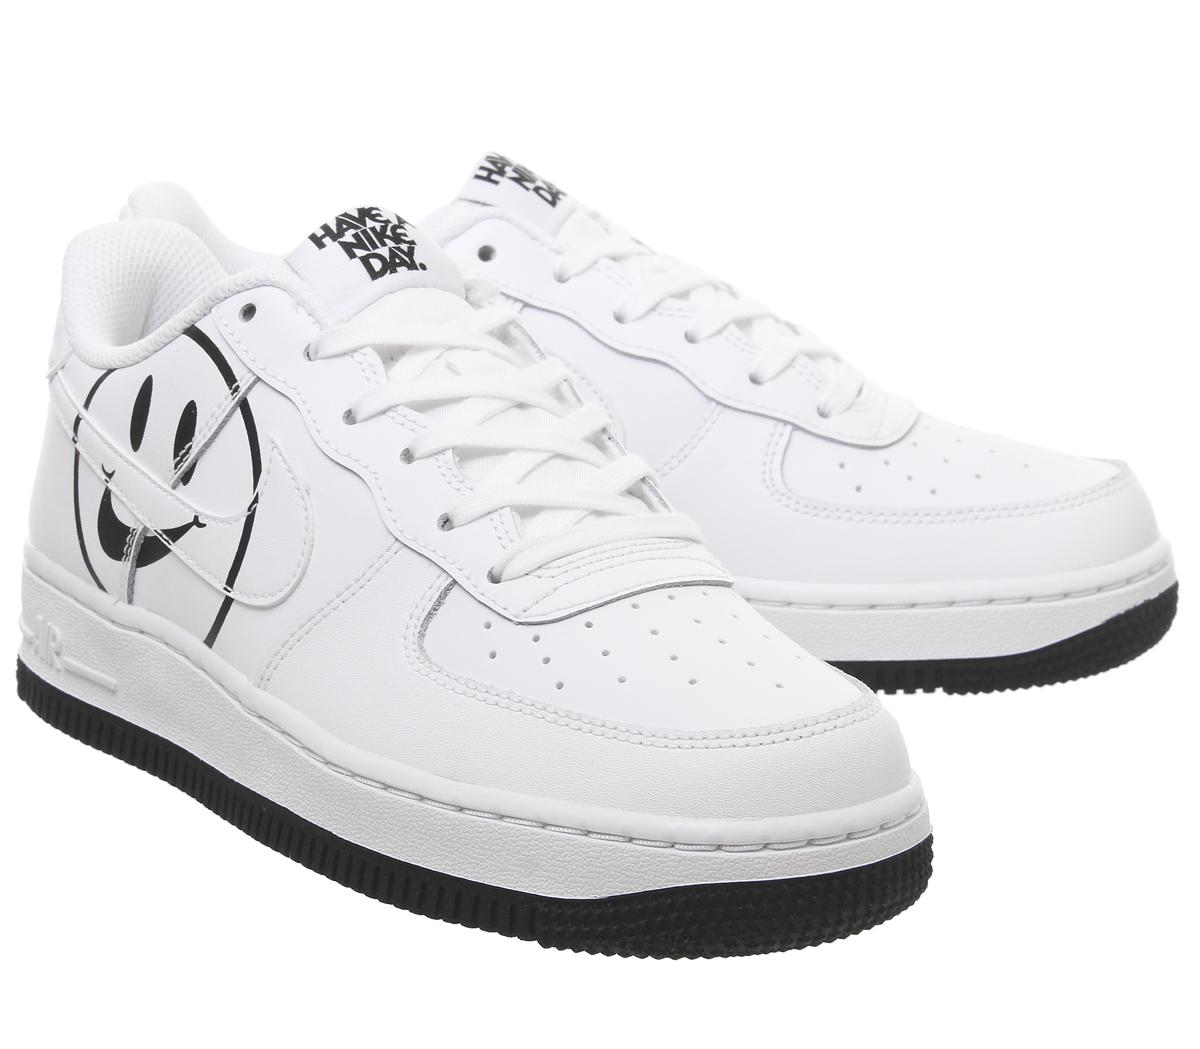 Nike Air Force 1 LV8 Grade School Lifestyle Shoes White